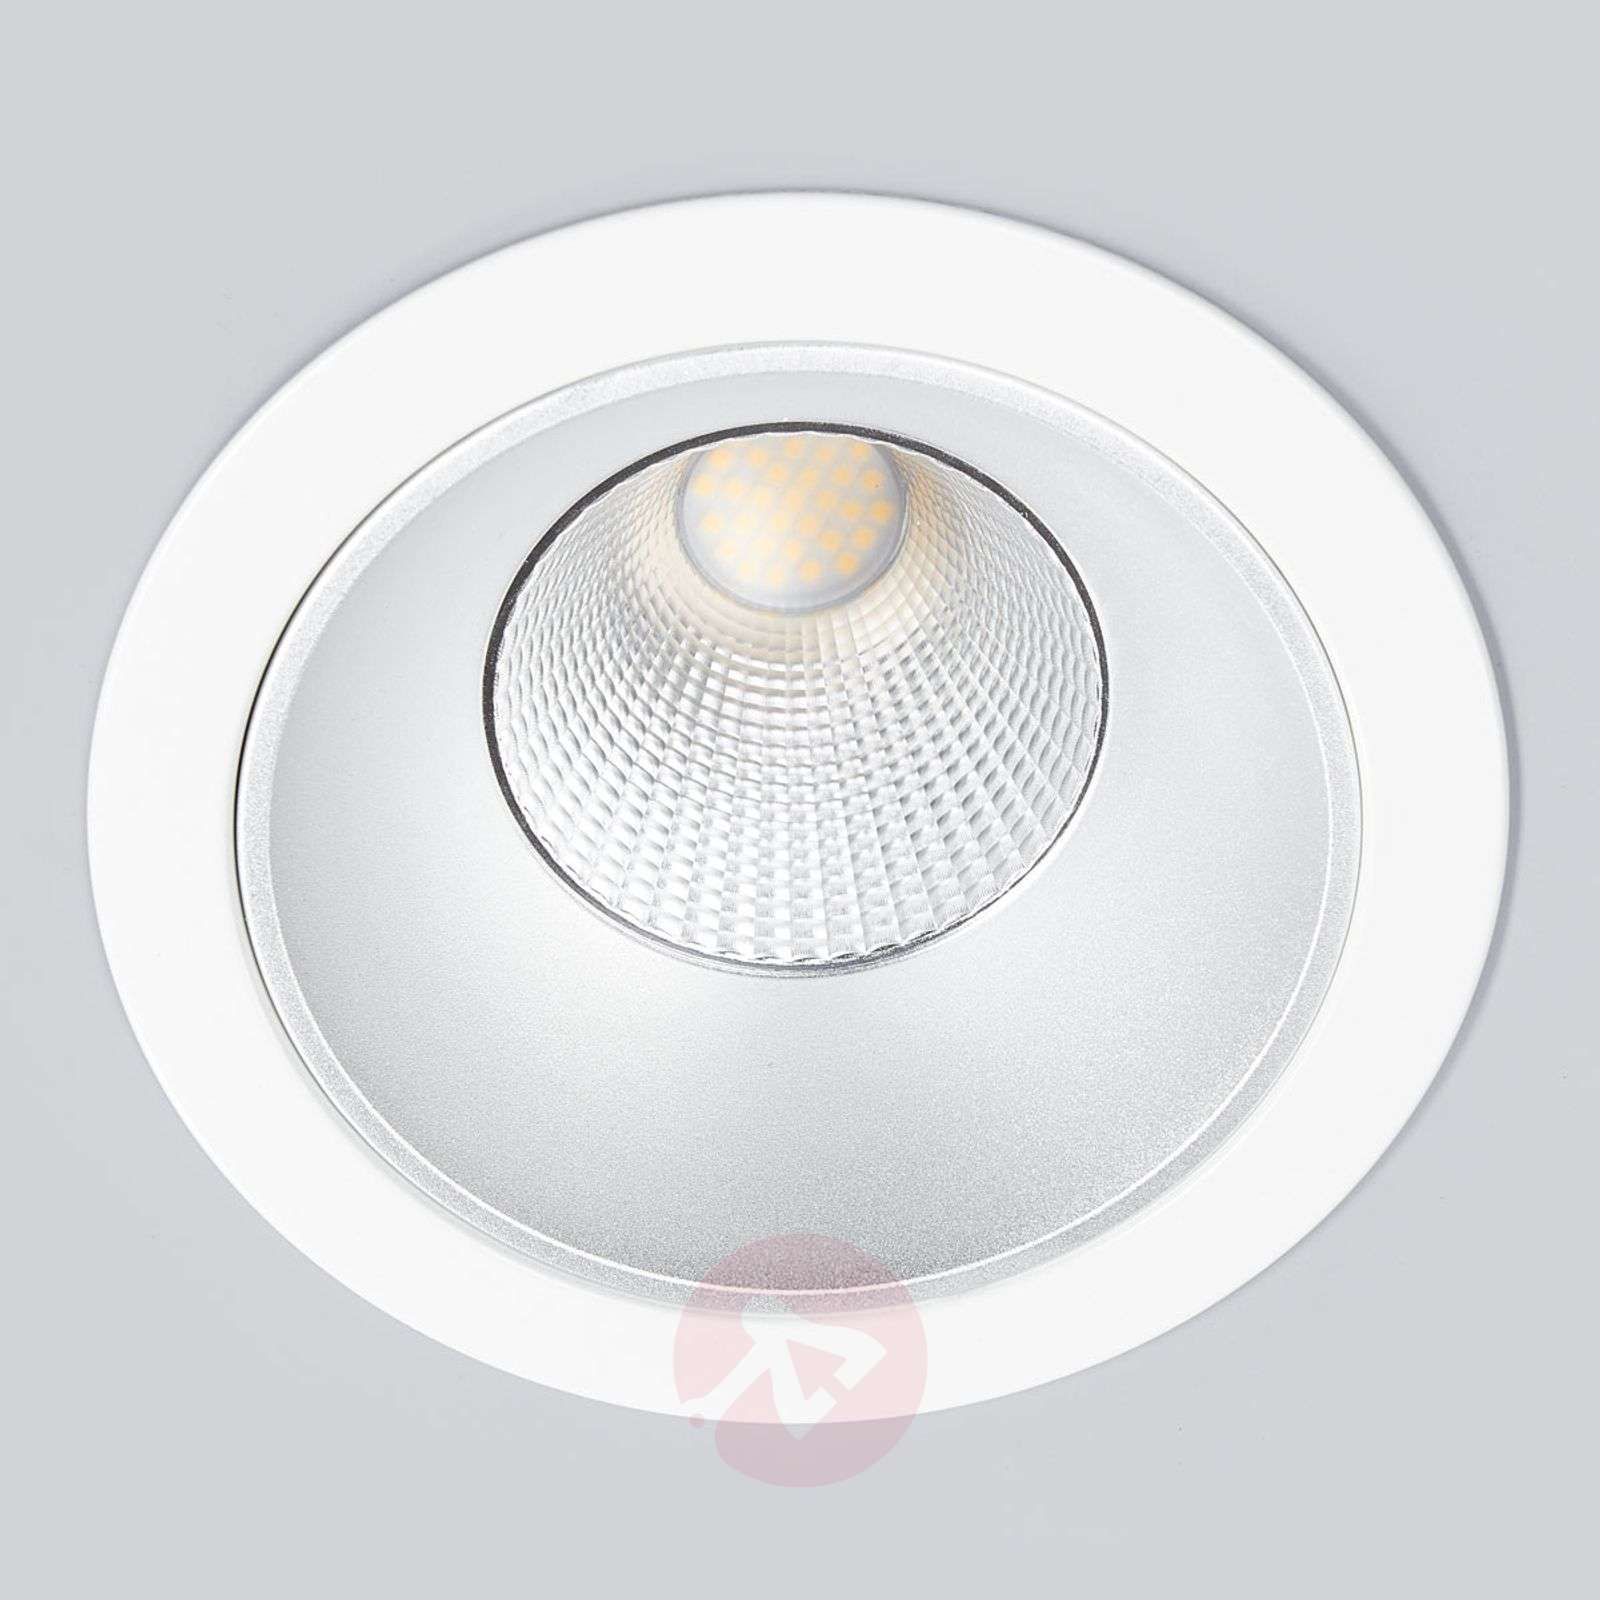 Jannis led recessed light in white lights jannis led recessed light in white 9978042 02 aloadofball Gallery